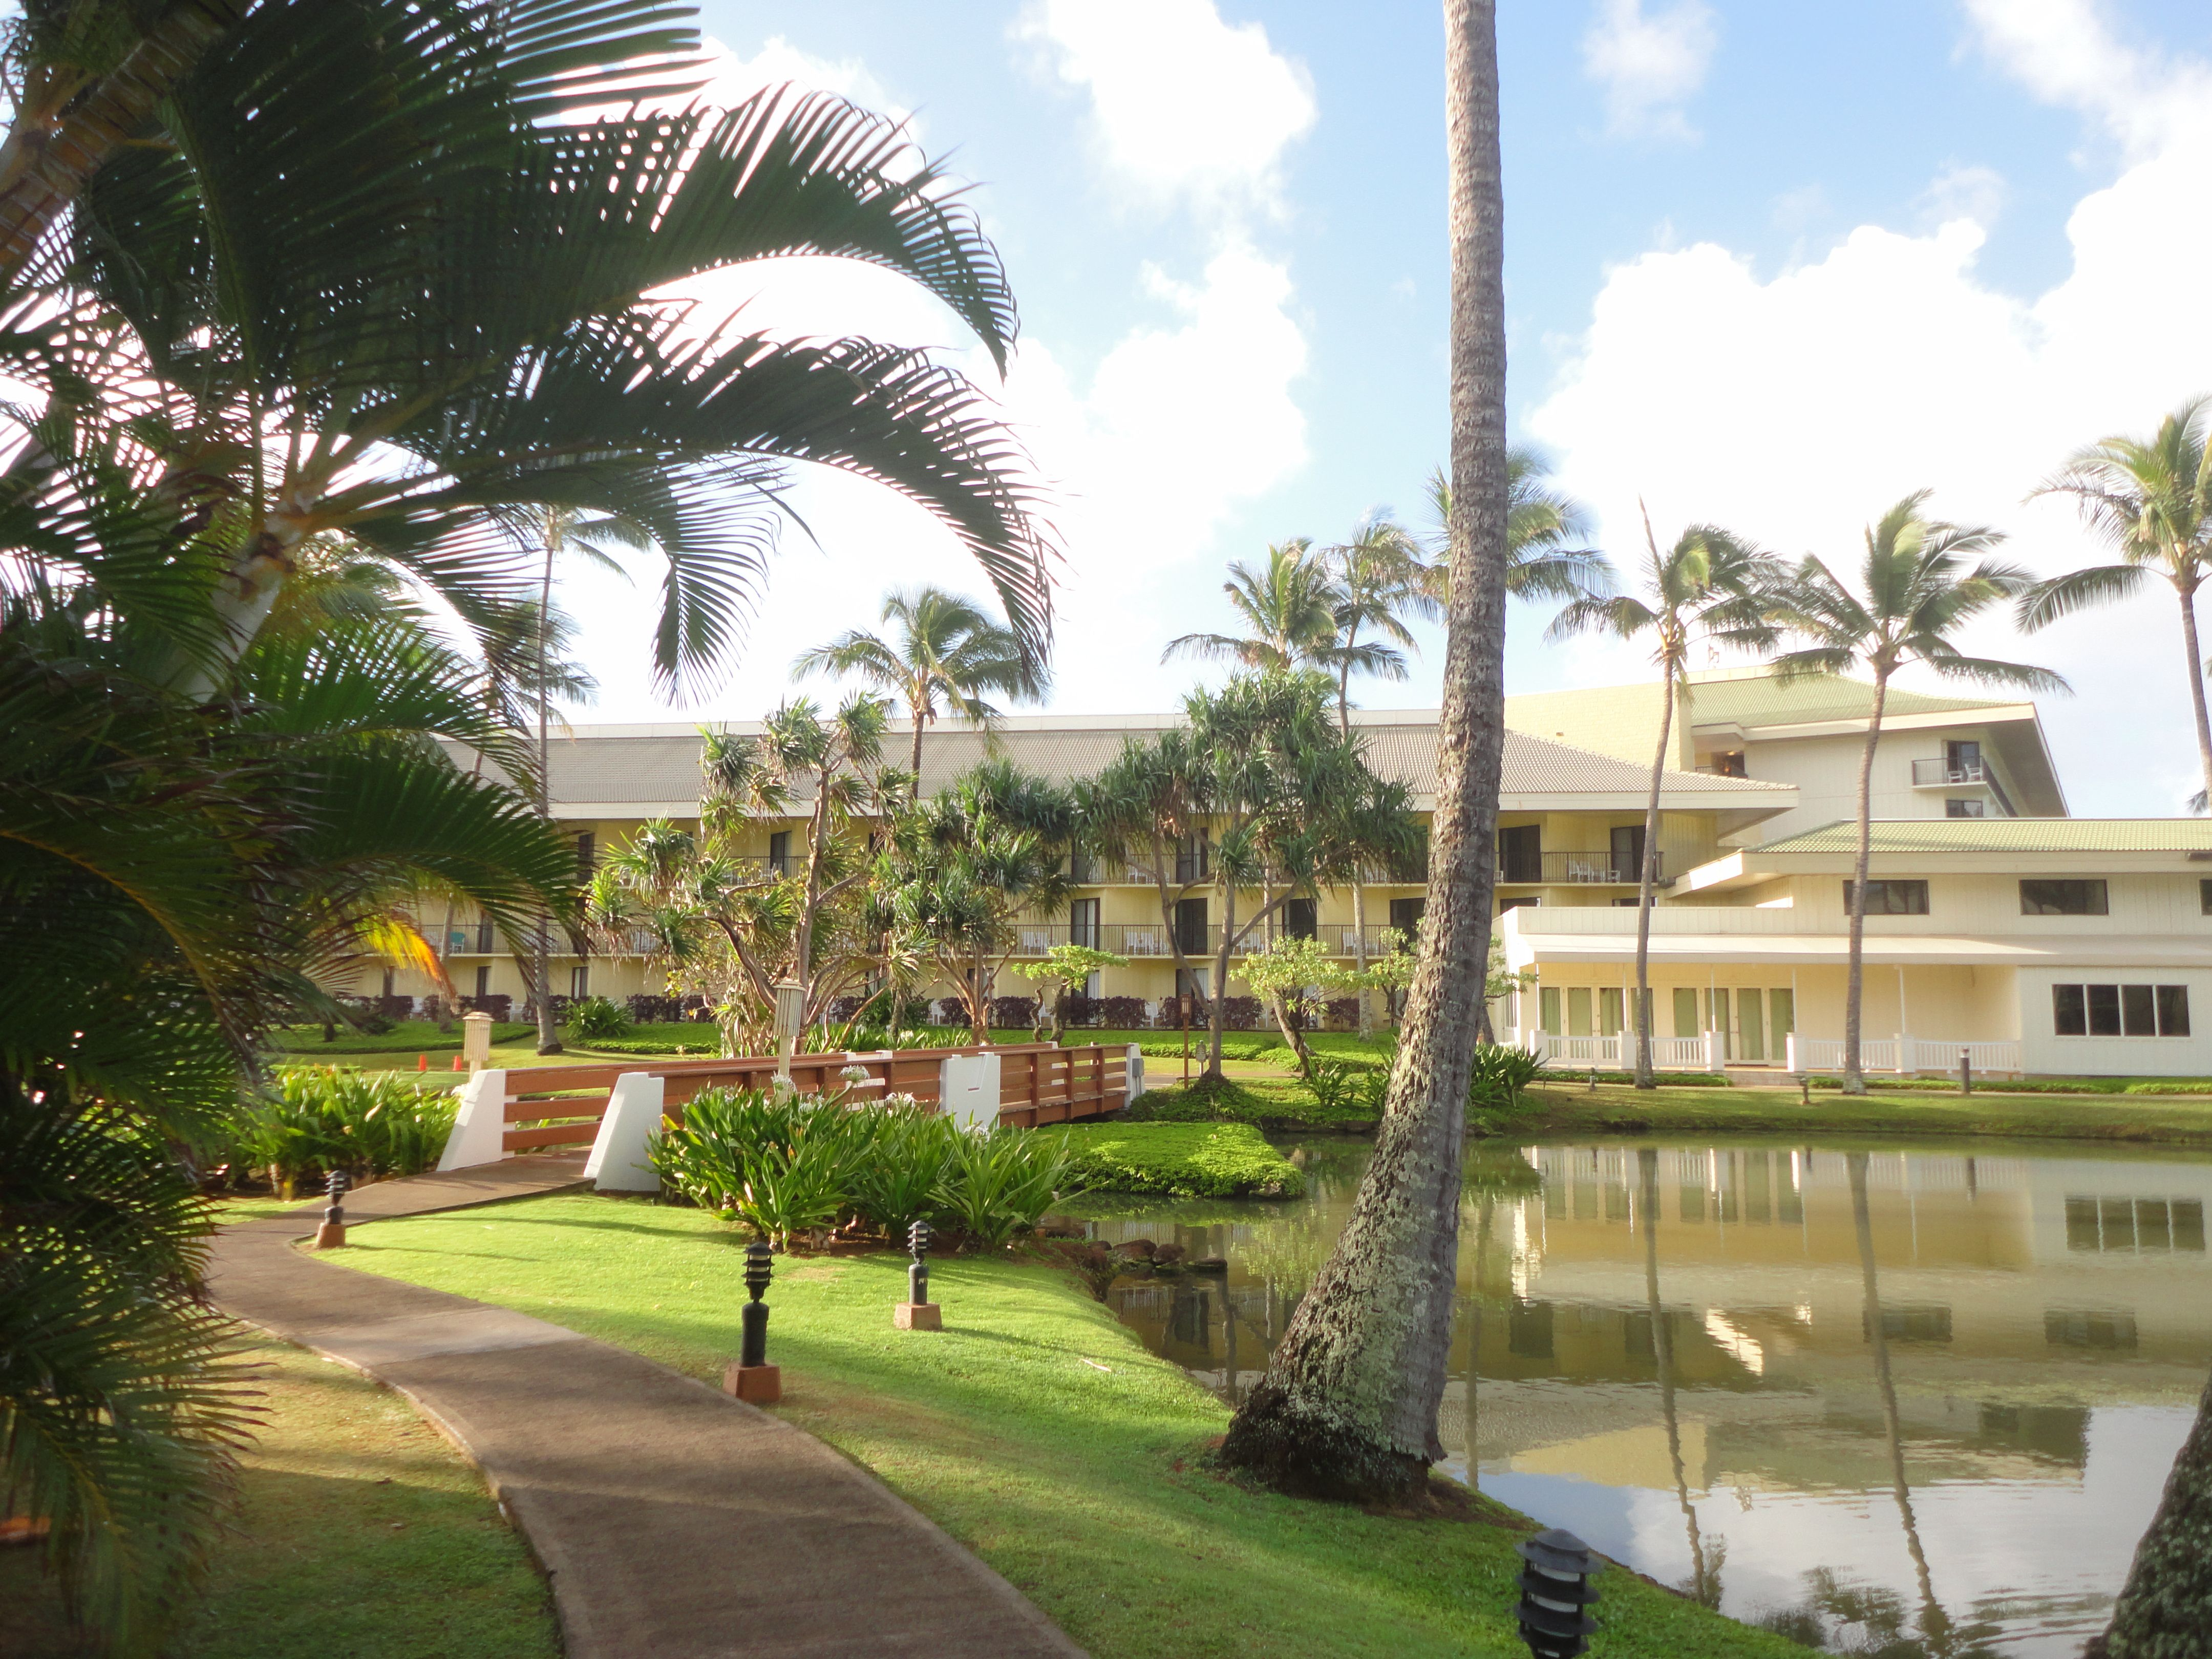 And the hotel at Kauai Beach Resort will soon be buzzing with tourists...